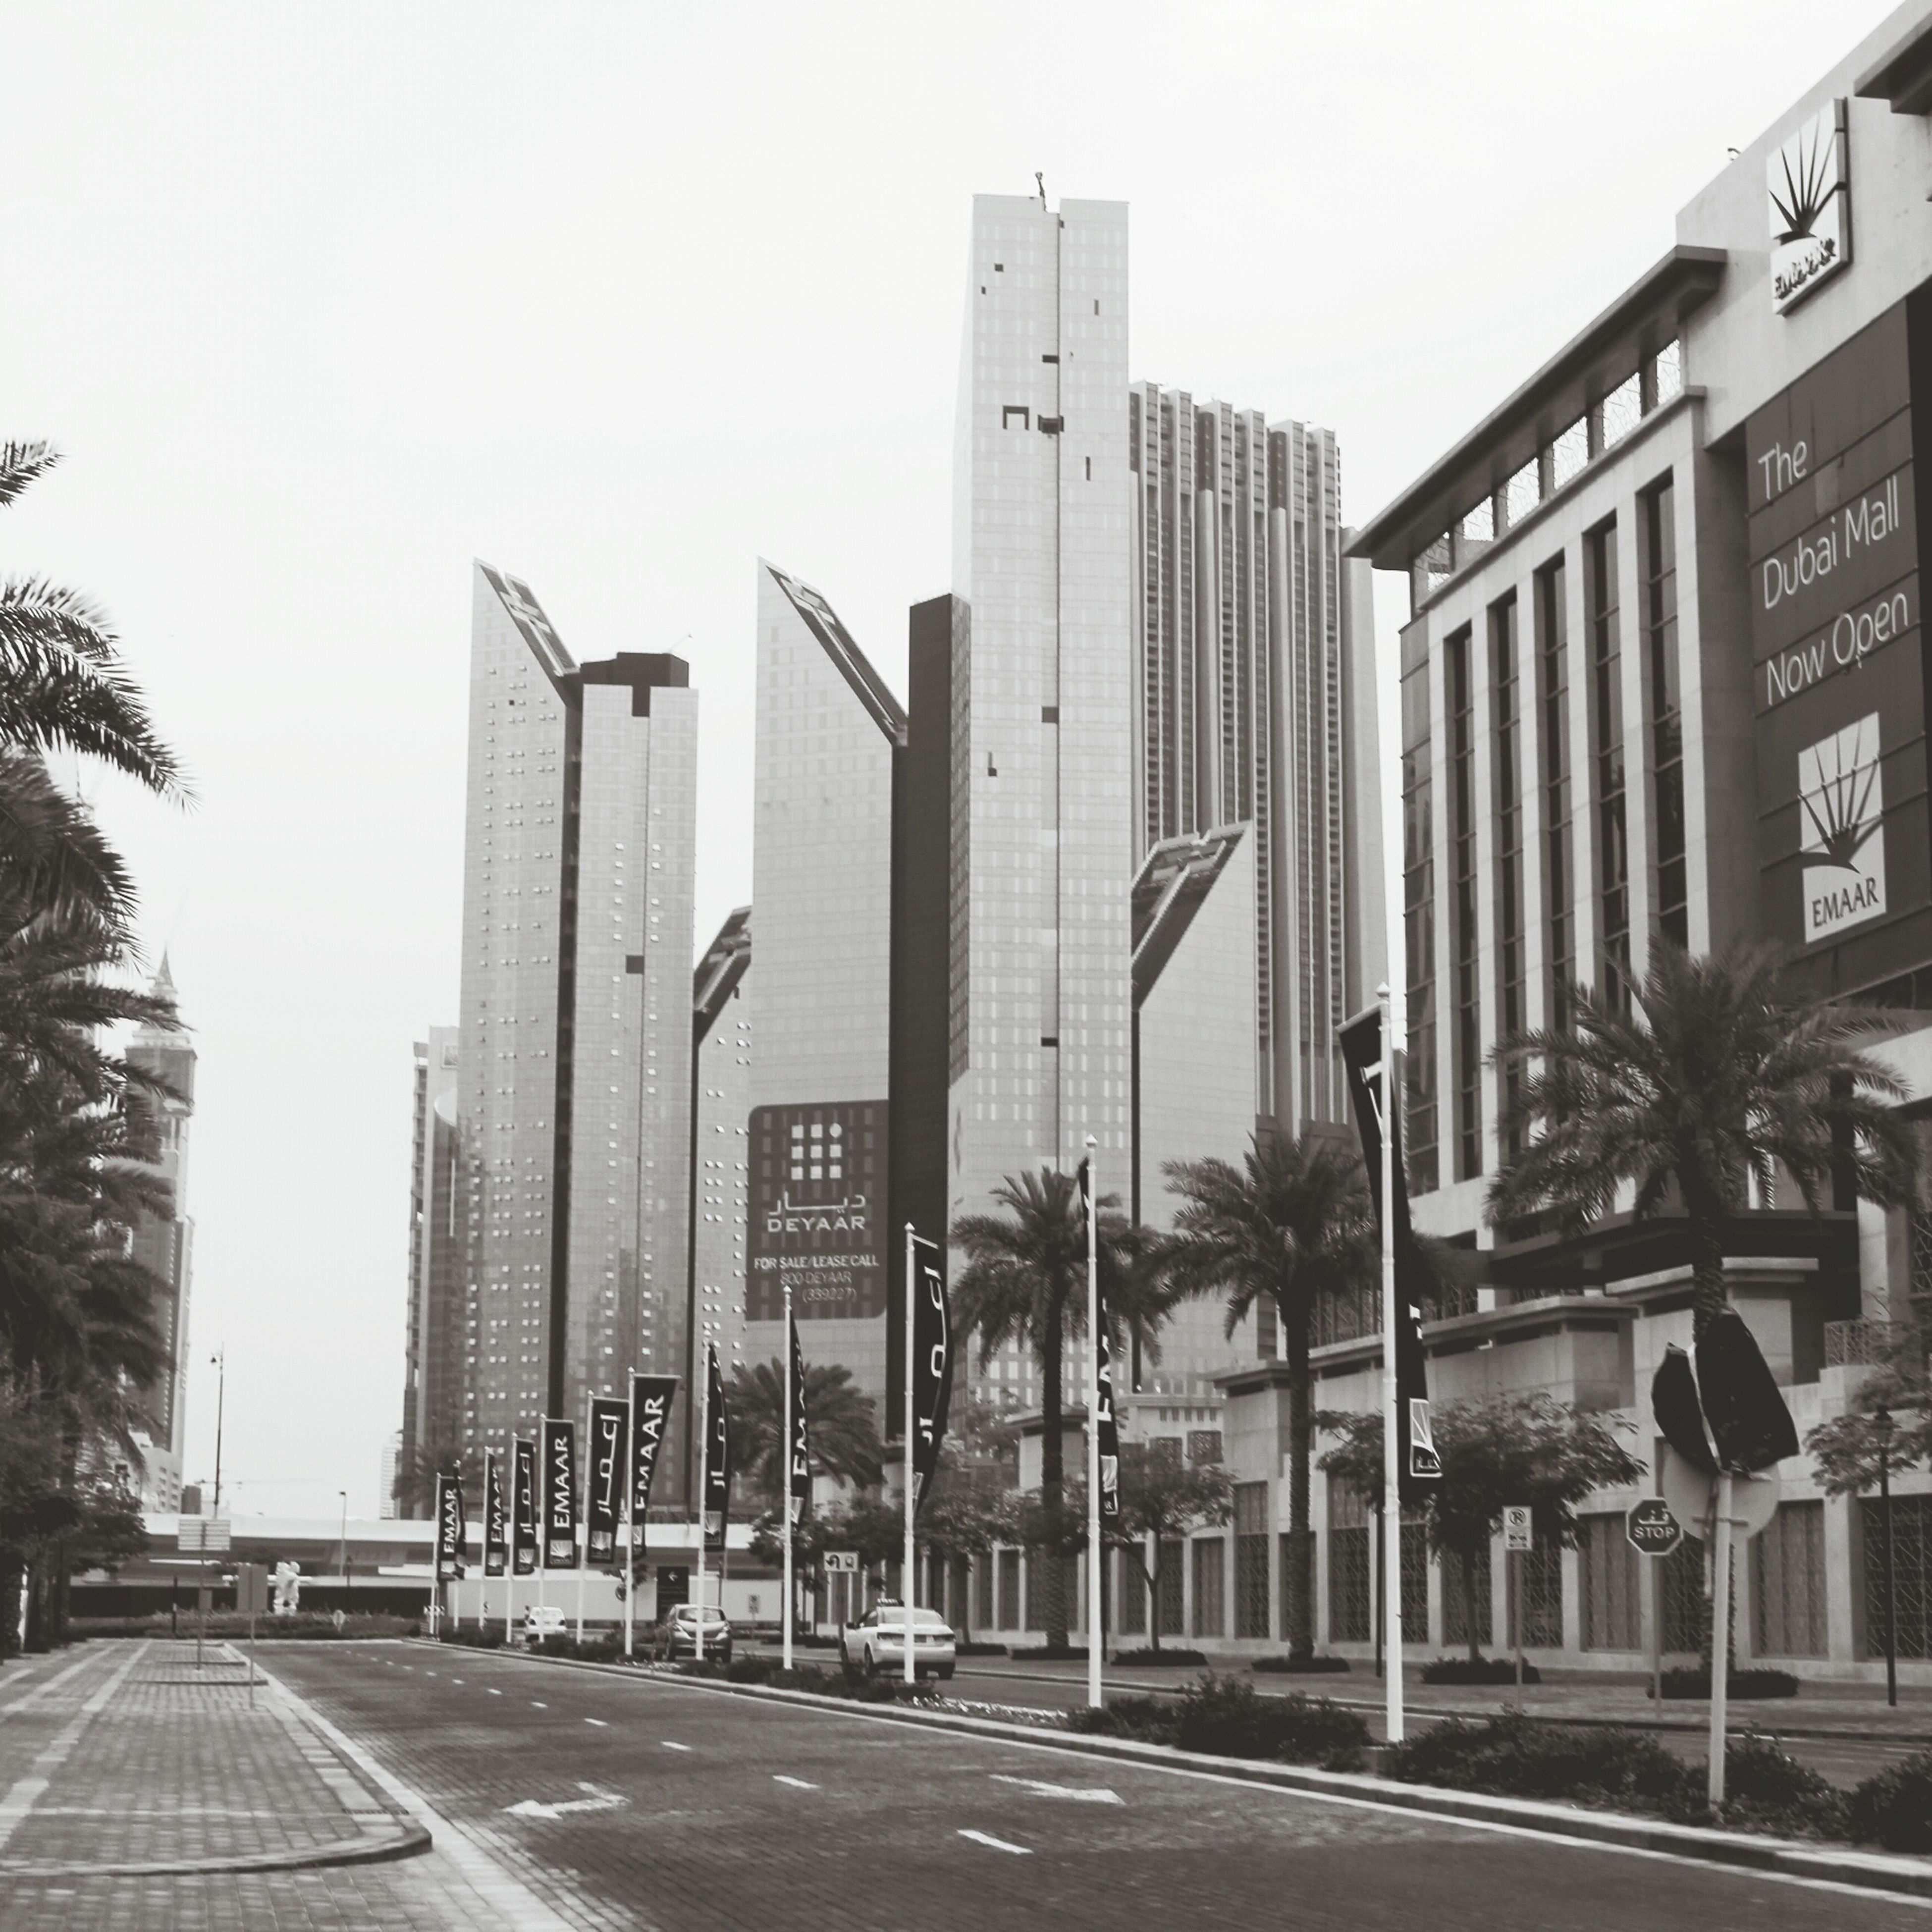 building exterior, architecture, built structure, city, clear sky, street, building, office building, road, modern, transportation, skyscraper, city life, sky, road marking, day, street light, outdoors, the way forward, tall - high